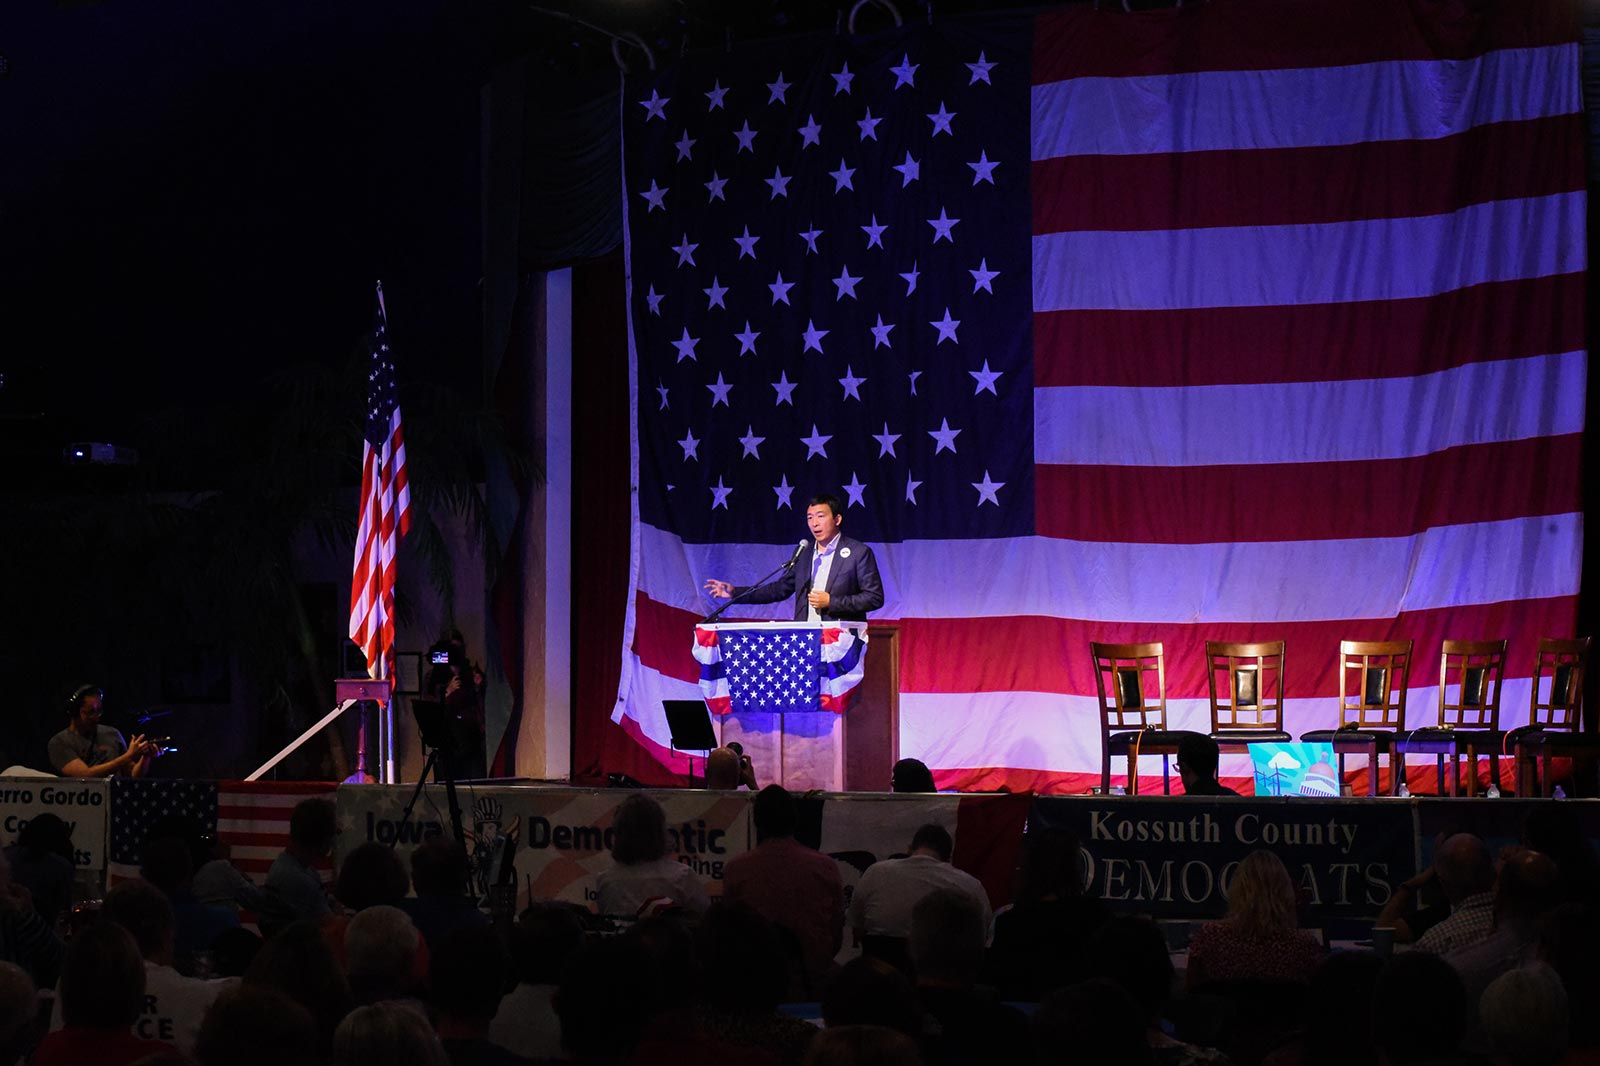 Andrew Yang at a podium on a stage against a backdrop of an American flag.